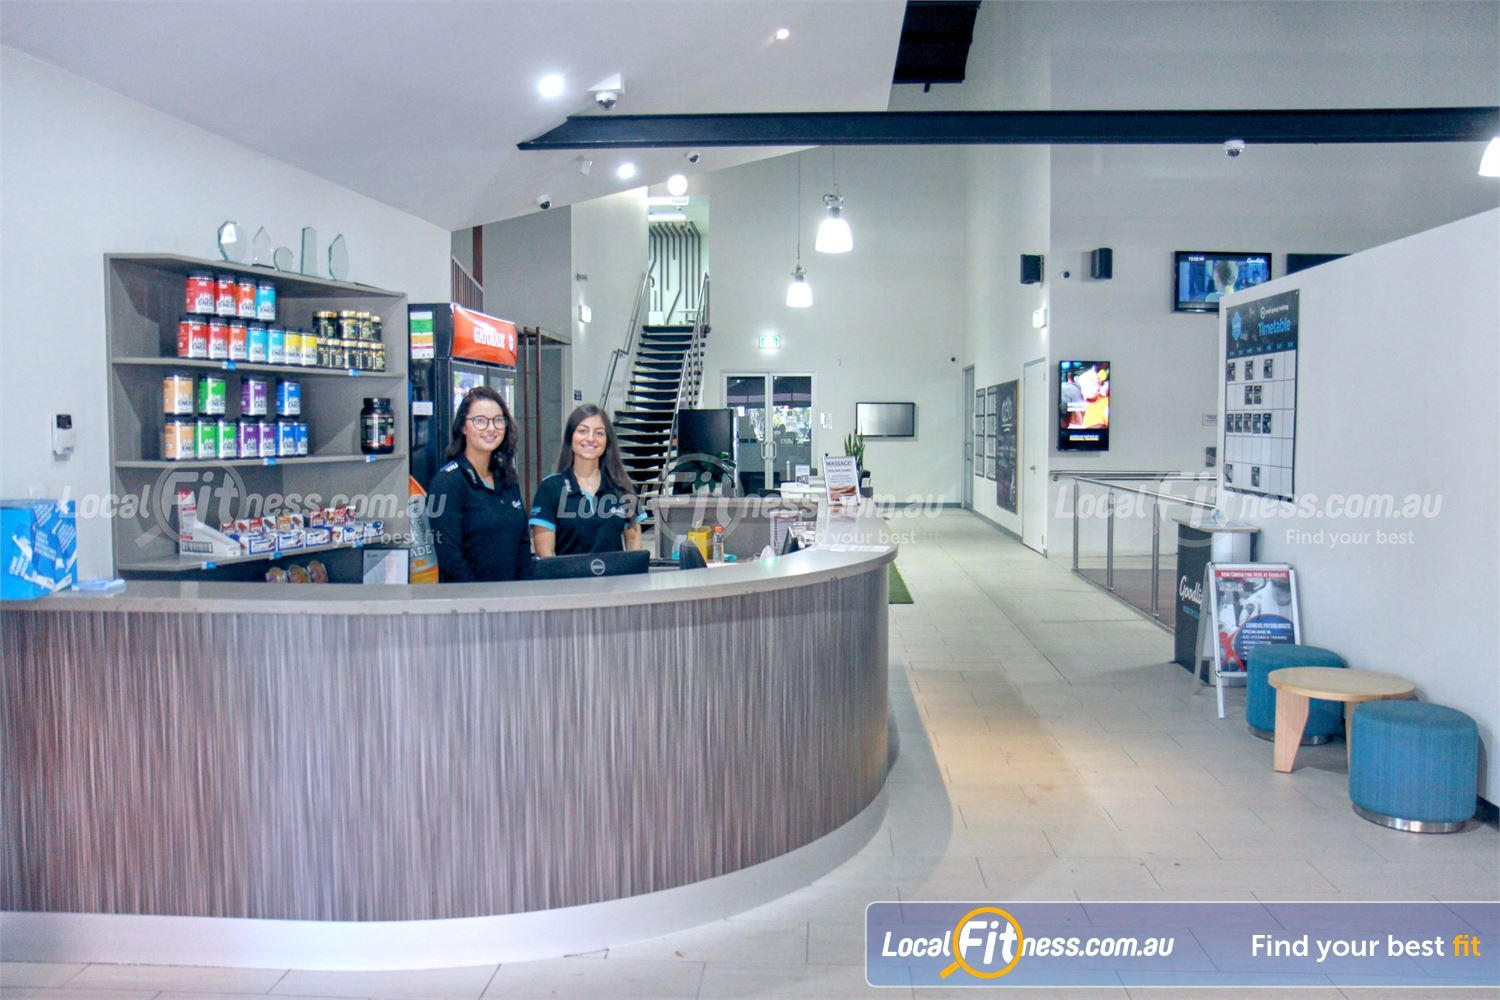 Goodlife Health Clubs Mooroolbark Our team are ready to welcome you to Goodlife Mooroolbark.